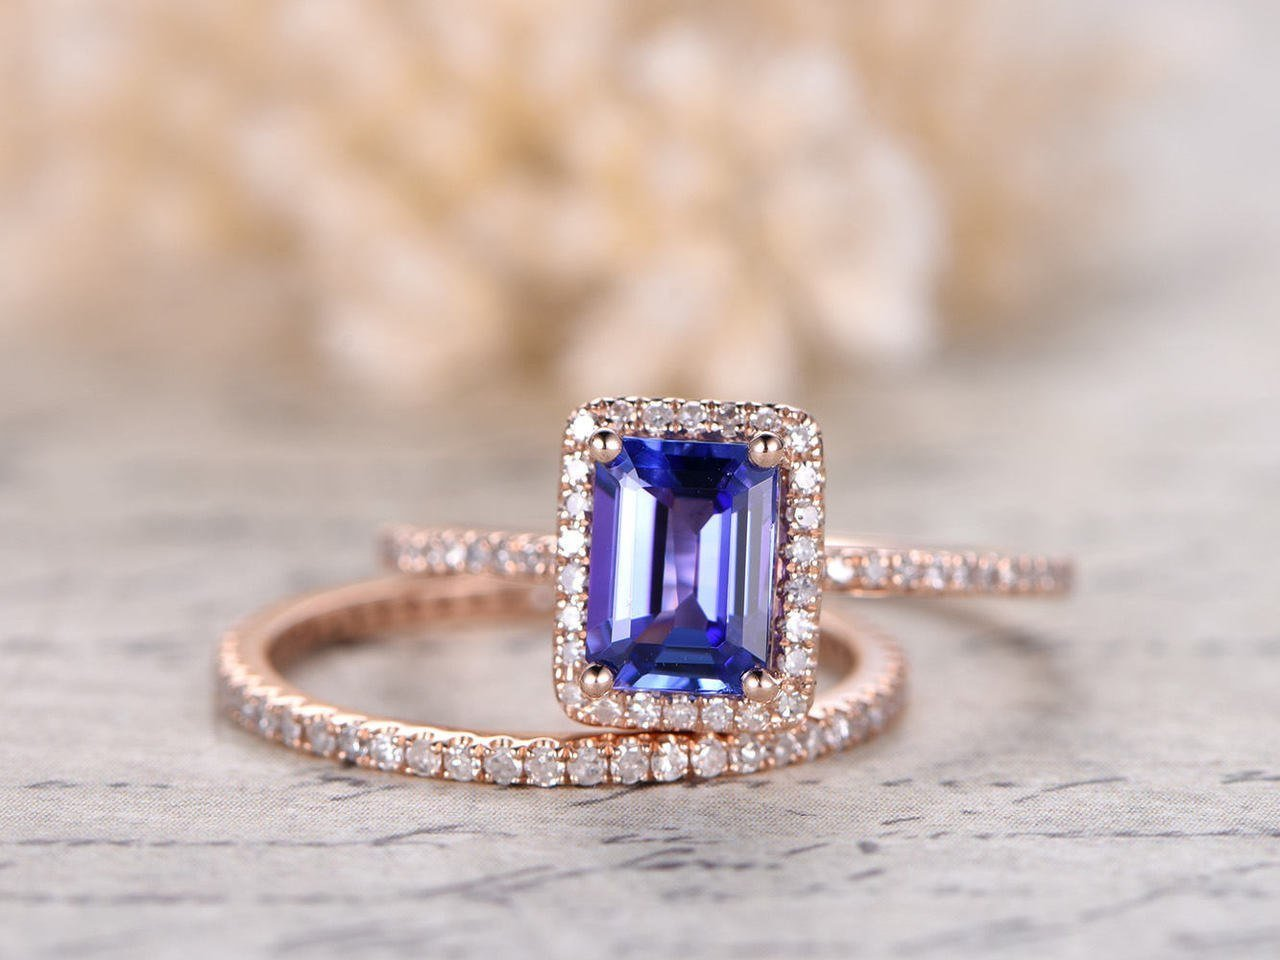 dd48c269019668 Beautiful 1.5 Carat Emerald cut Real Tanzanite and Diamond Wedding Ring Set  with Engagement Ring and Matching Wedding Band in18k Gold Over Silver